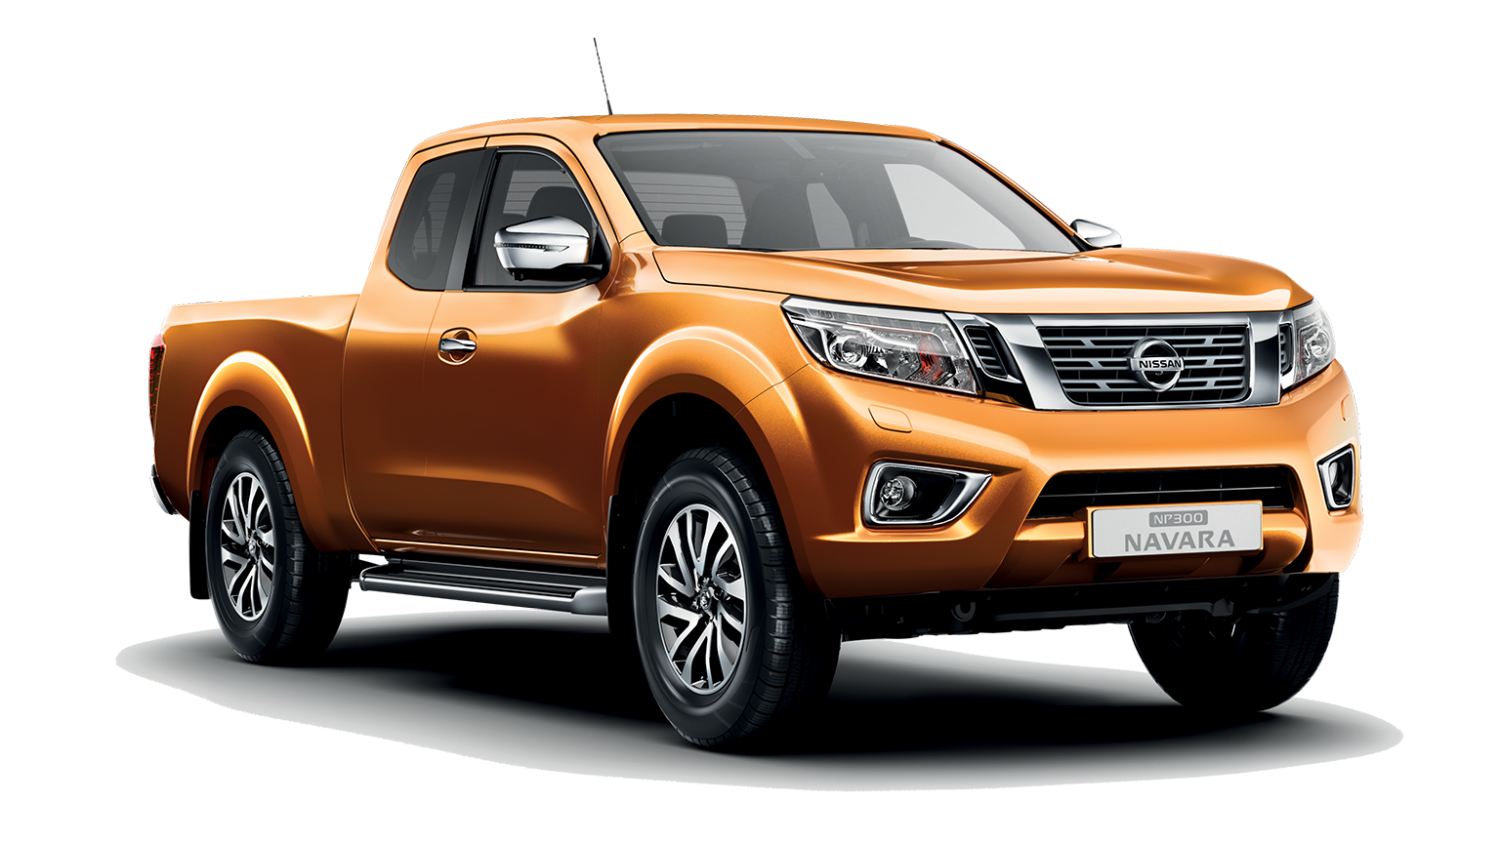 offres nissan navara 4x4 pick up nissan. Black Bedroom Furniture Sets. Home Design Ideas